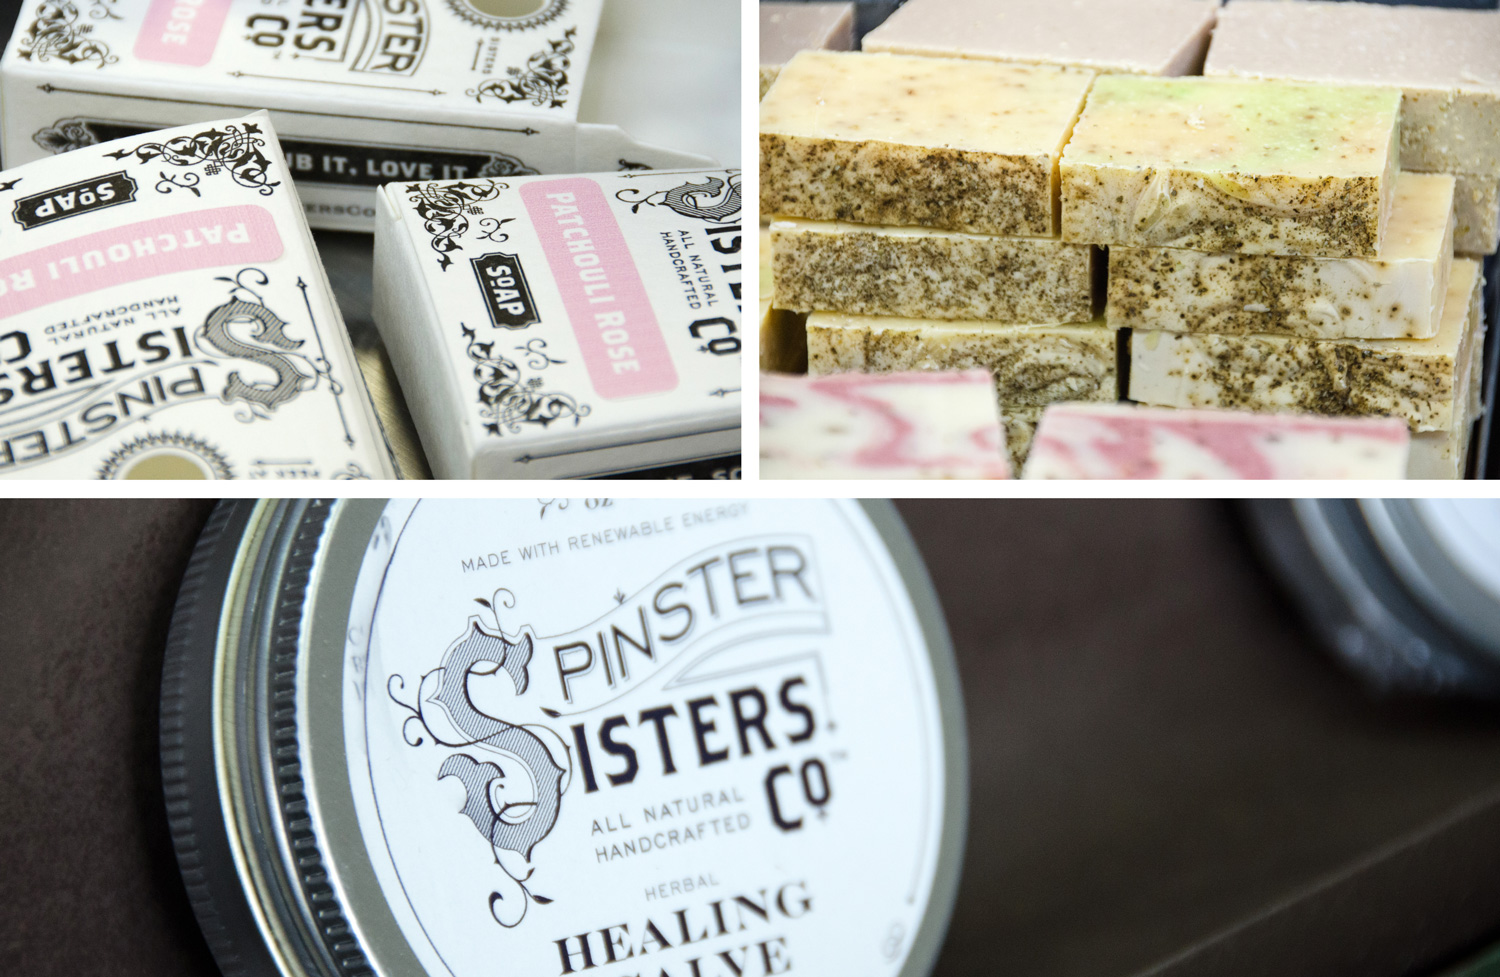 Spinster Sisters products (via Small Things in Big Numbers)